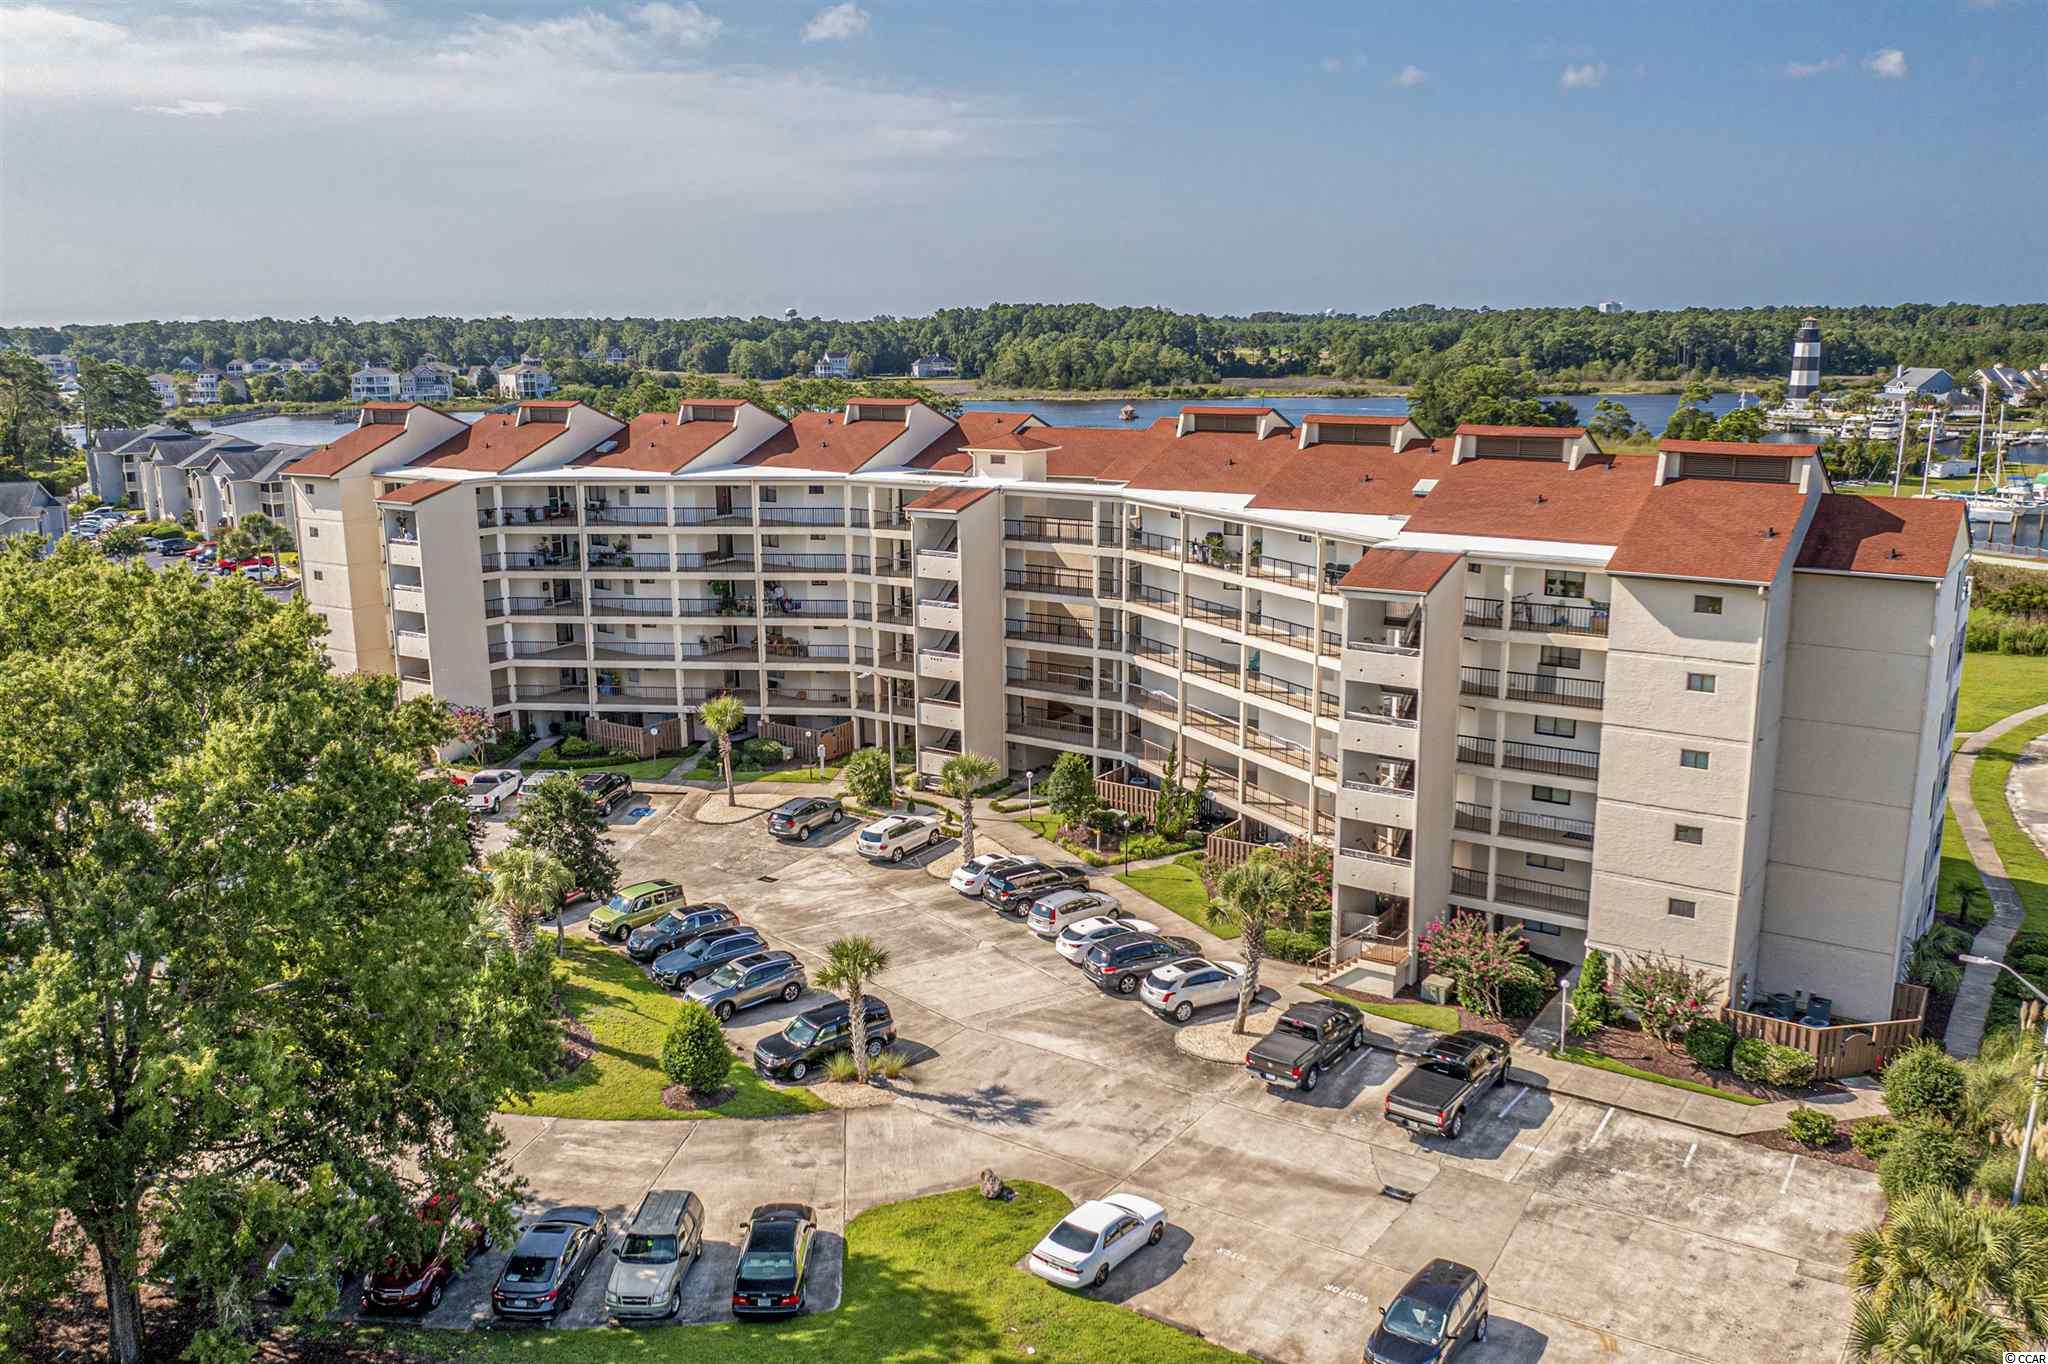 """The views from this unit will make you want to say """"Ahhhhh"""" as you relax on the wrap around porch overlooking the marina, Lighthouse, pond and enjoy the calming waterway views! This lovely unit has been freshly painted and cleaned and has been a great long term rental investment for the owners for several years. Whether you are looking for a new place to call home, a second home to build many happy memories, or an investment property to add to your portfolio you can't go wrong with this unit! You not only get the serene water views this unit offers but if you are an avid boater you can keep an eye on your boat in your very own boat slip. There are not many units available in Little River that come with a slip so you will want to hurry....this one will not last long!"""